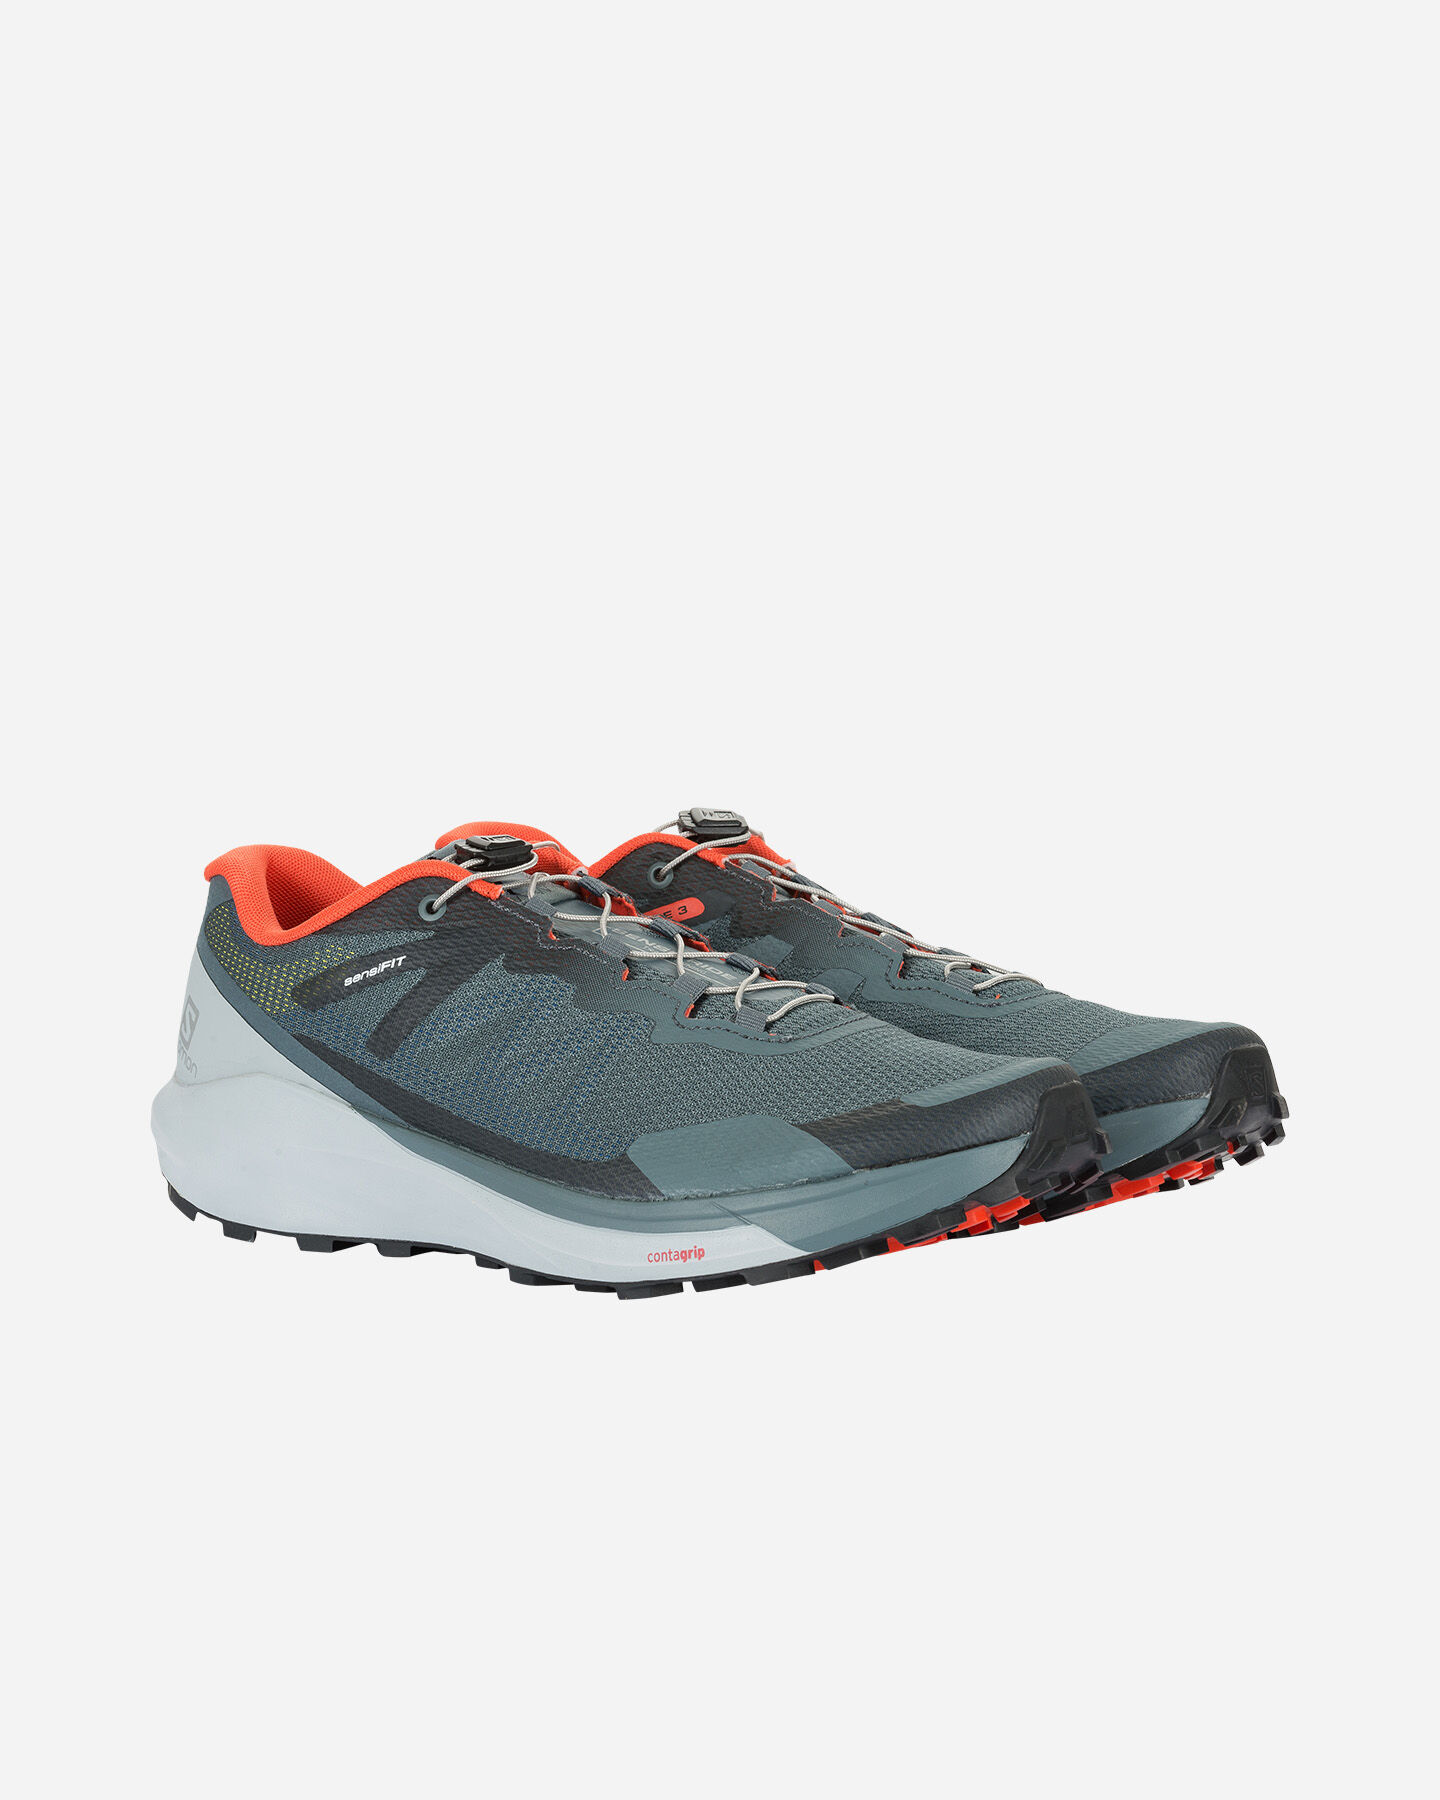 Scarpe running SALOMON SENSE RIDE 3 M S5181428 scatto 1